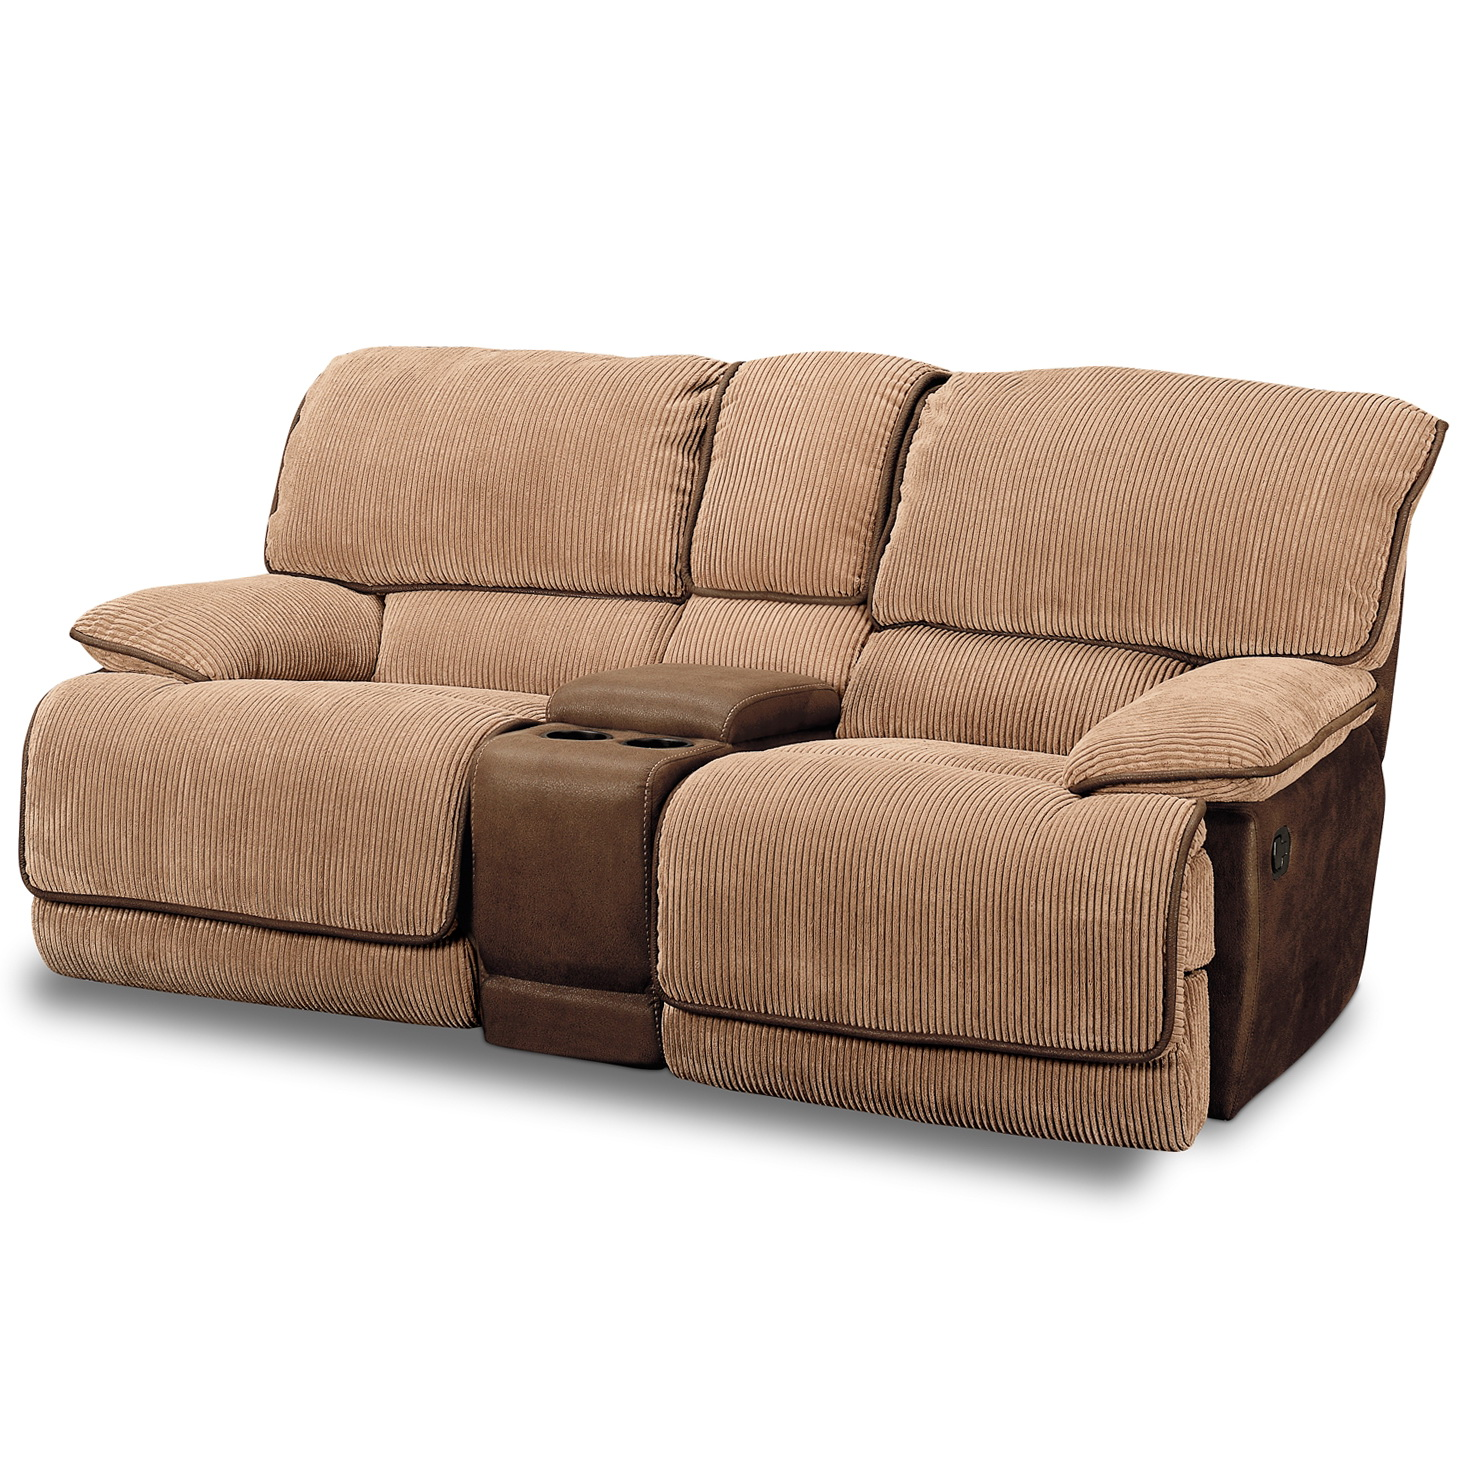 Dual Reclining Loveseat Cover Home Design Ideas